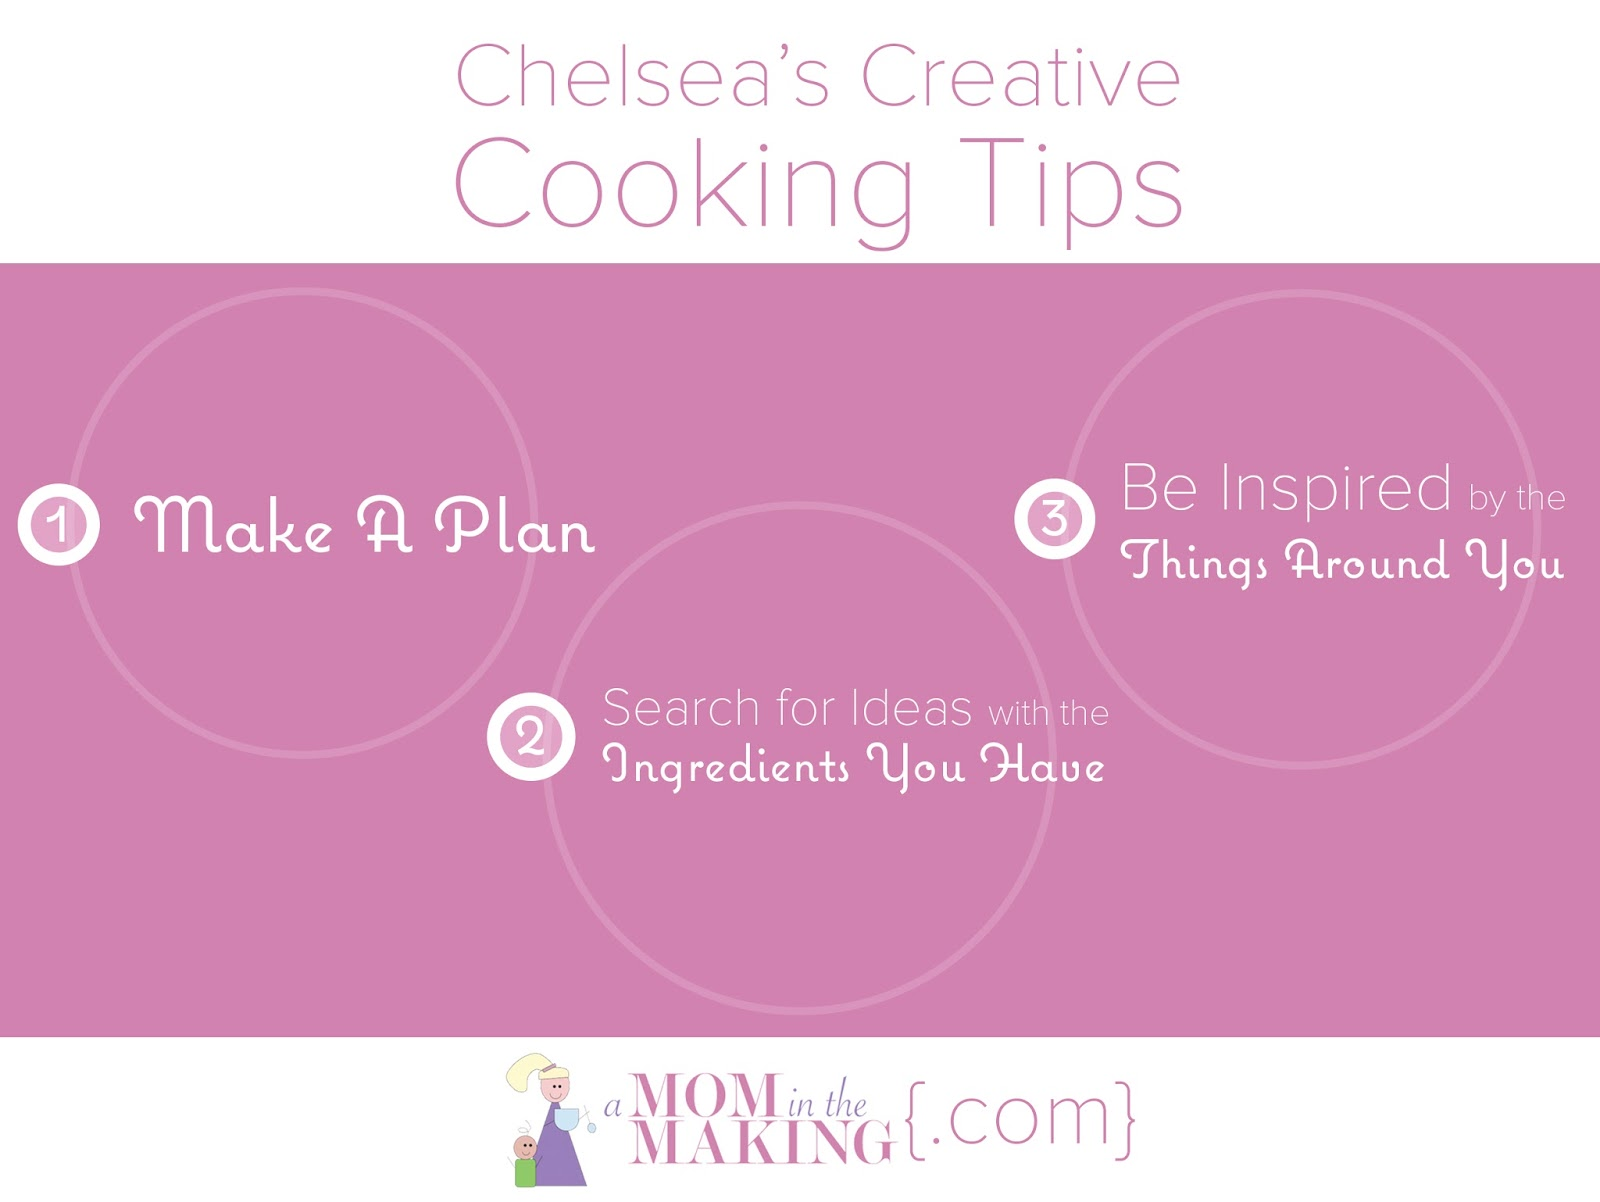 Chelsea's Creative Cooking Tips